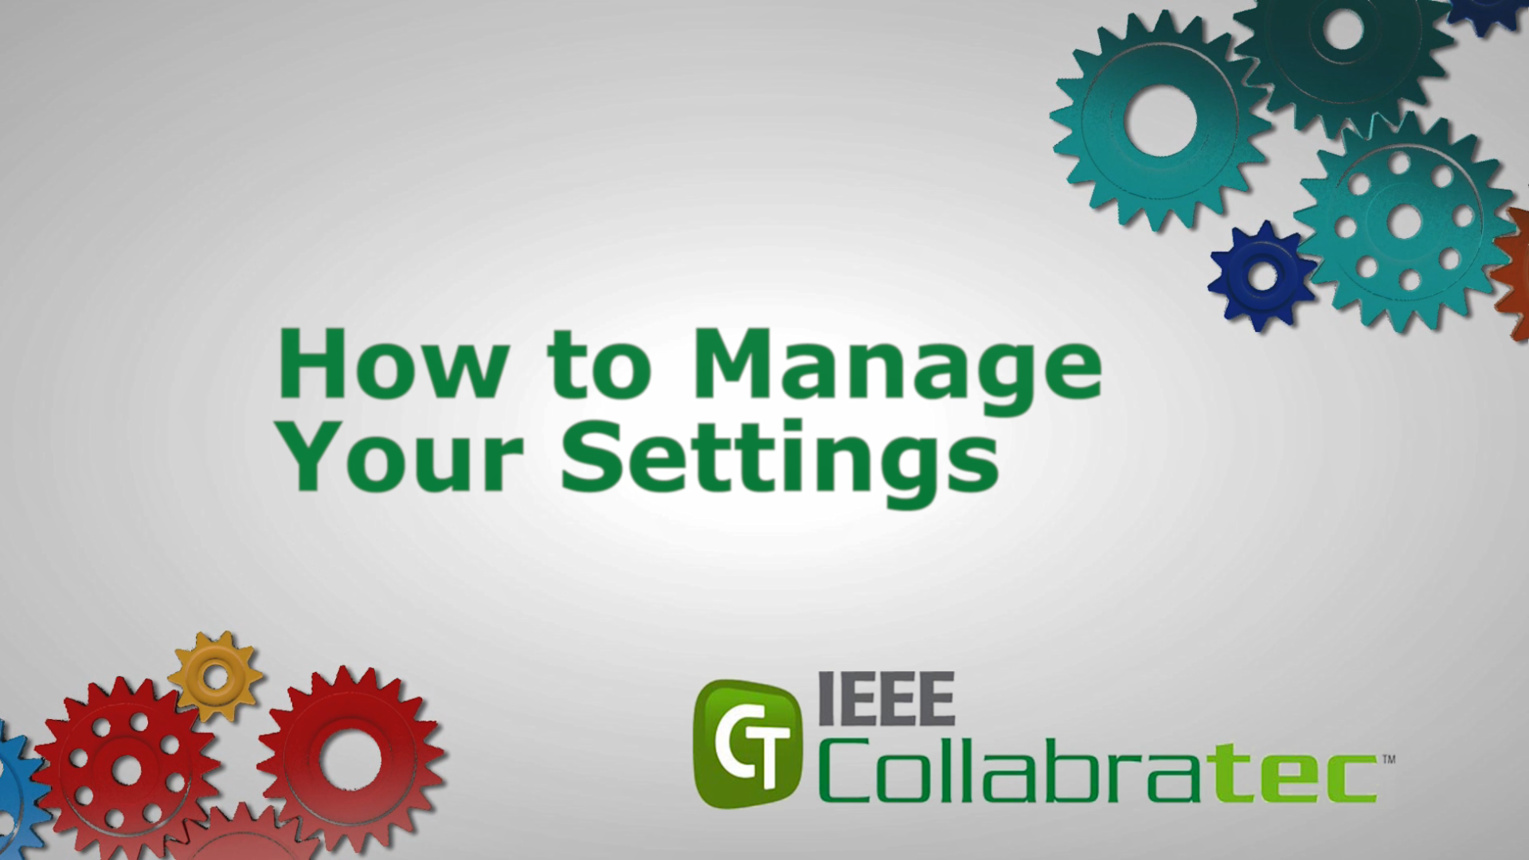 IEEE Collabratec: How to Manage Your Settings